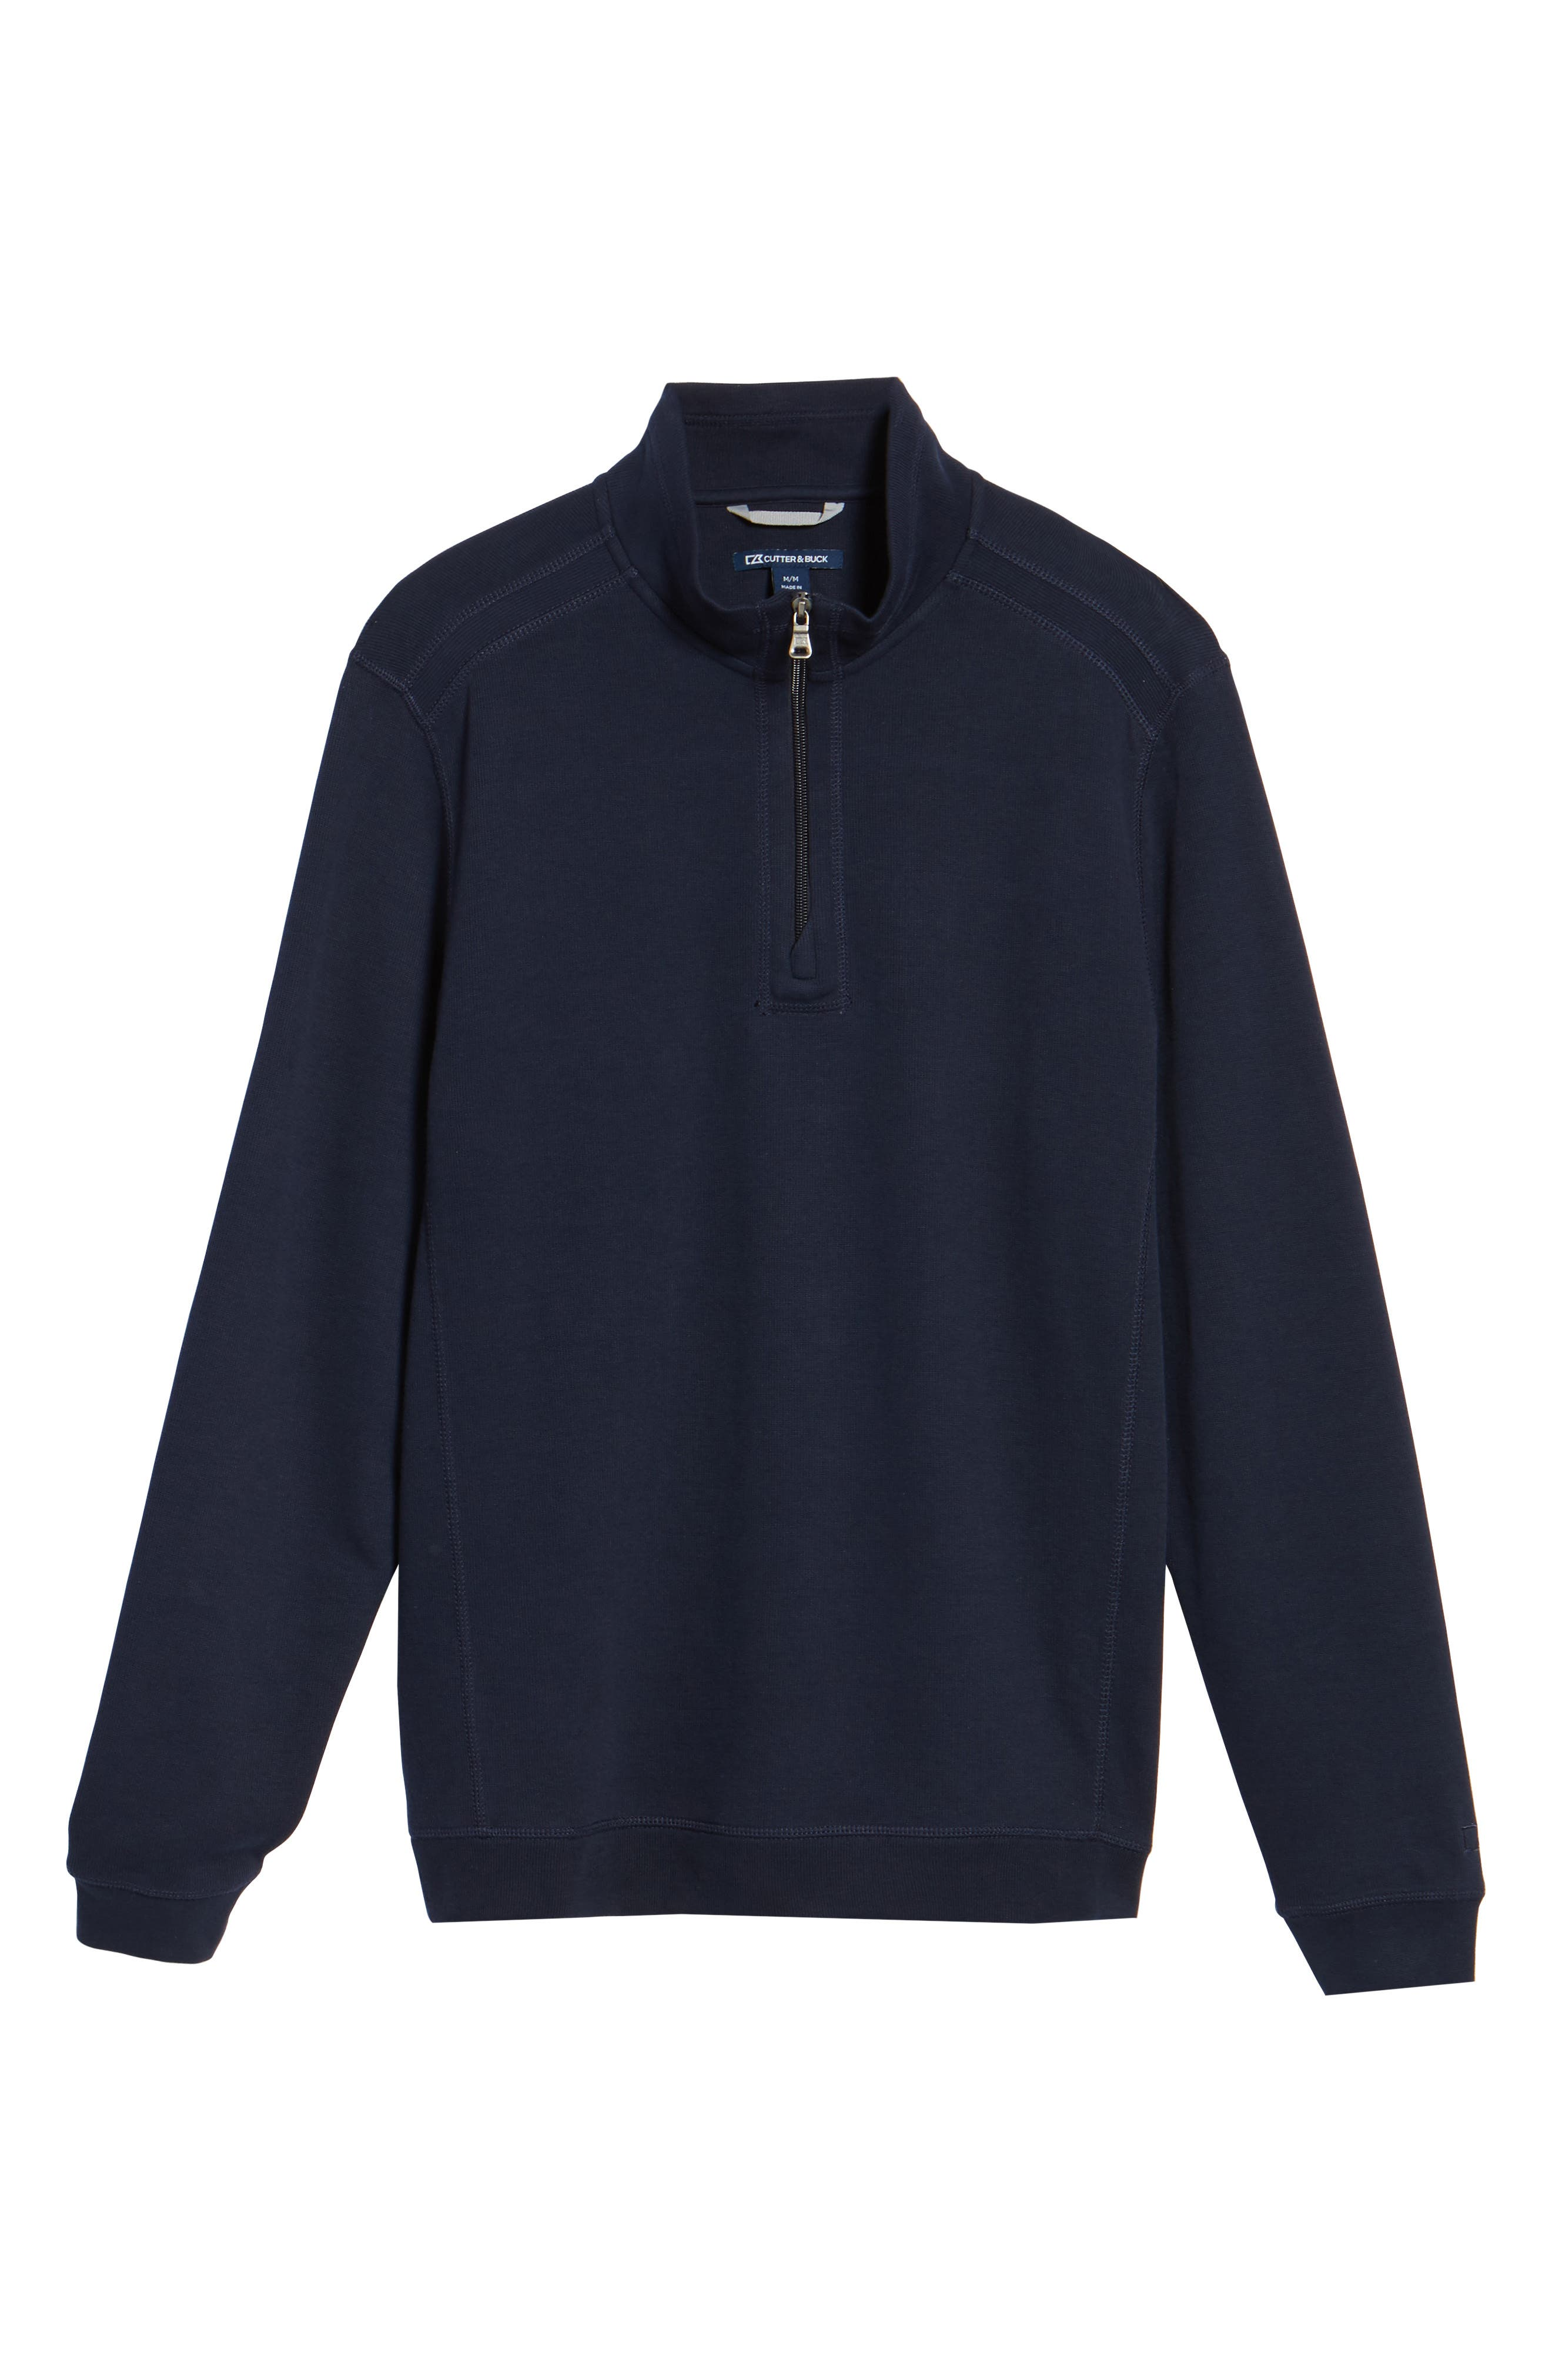 Bayview Quarter Zip Pullover,                             Alternate thumbnail 6, color,                             Liberty Navy